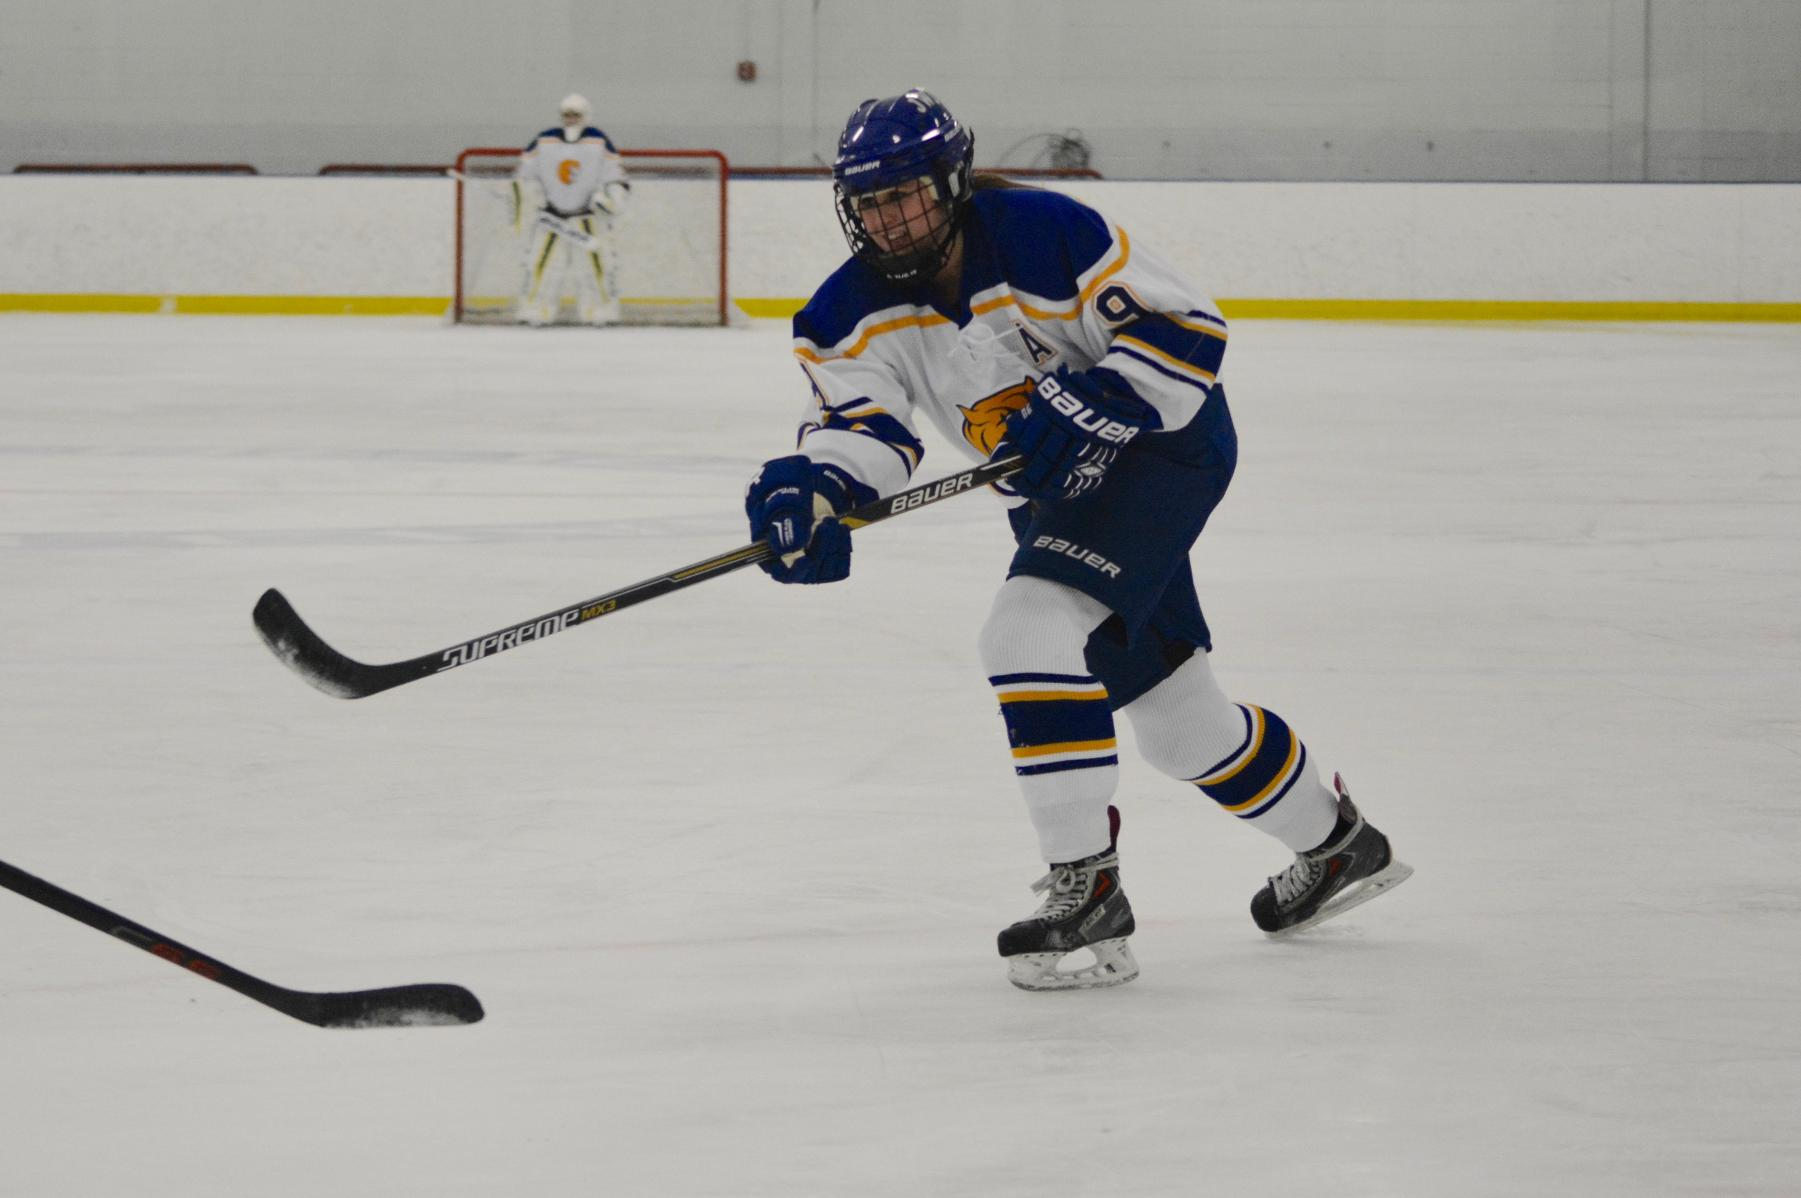 Britton's Two Goals Leads JWU To 2-1 Win Over Salem State